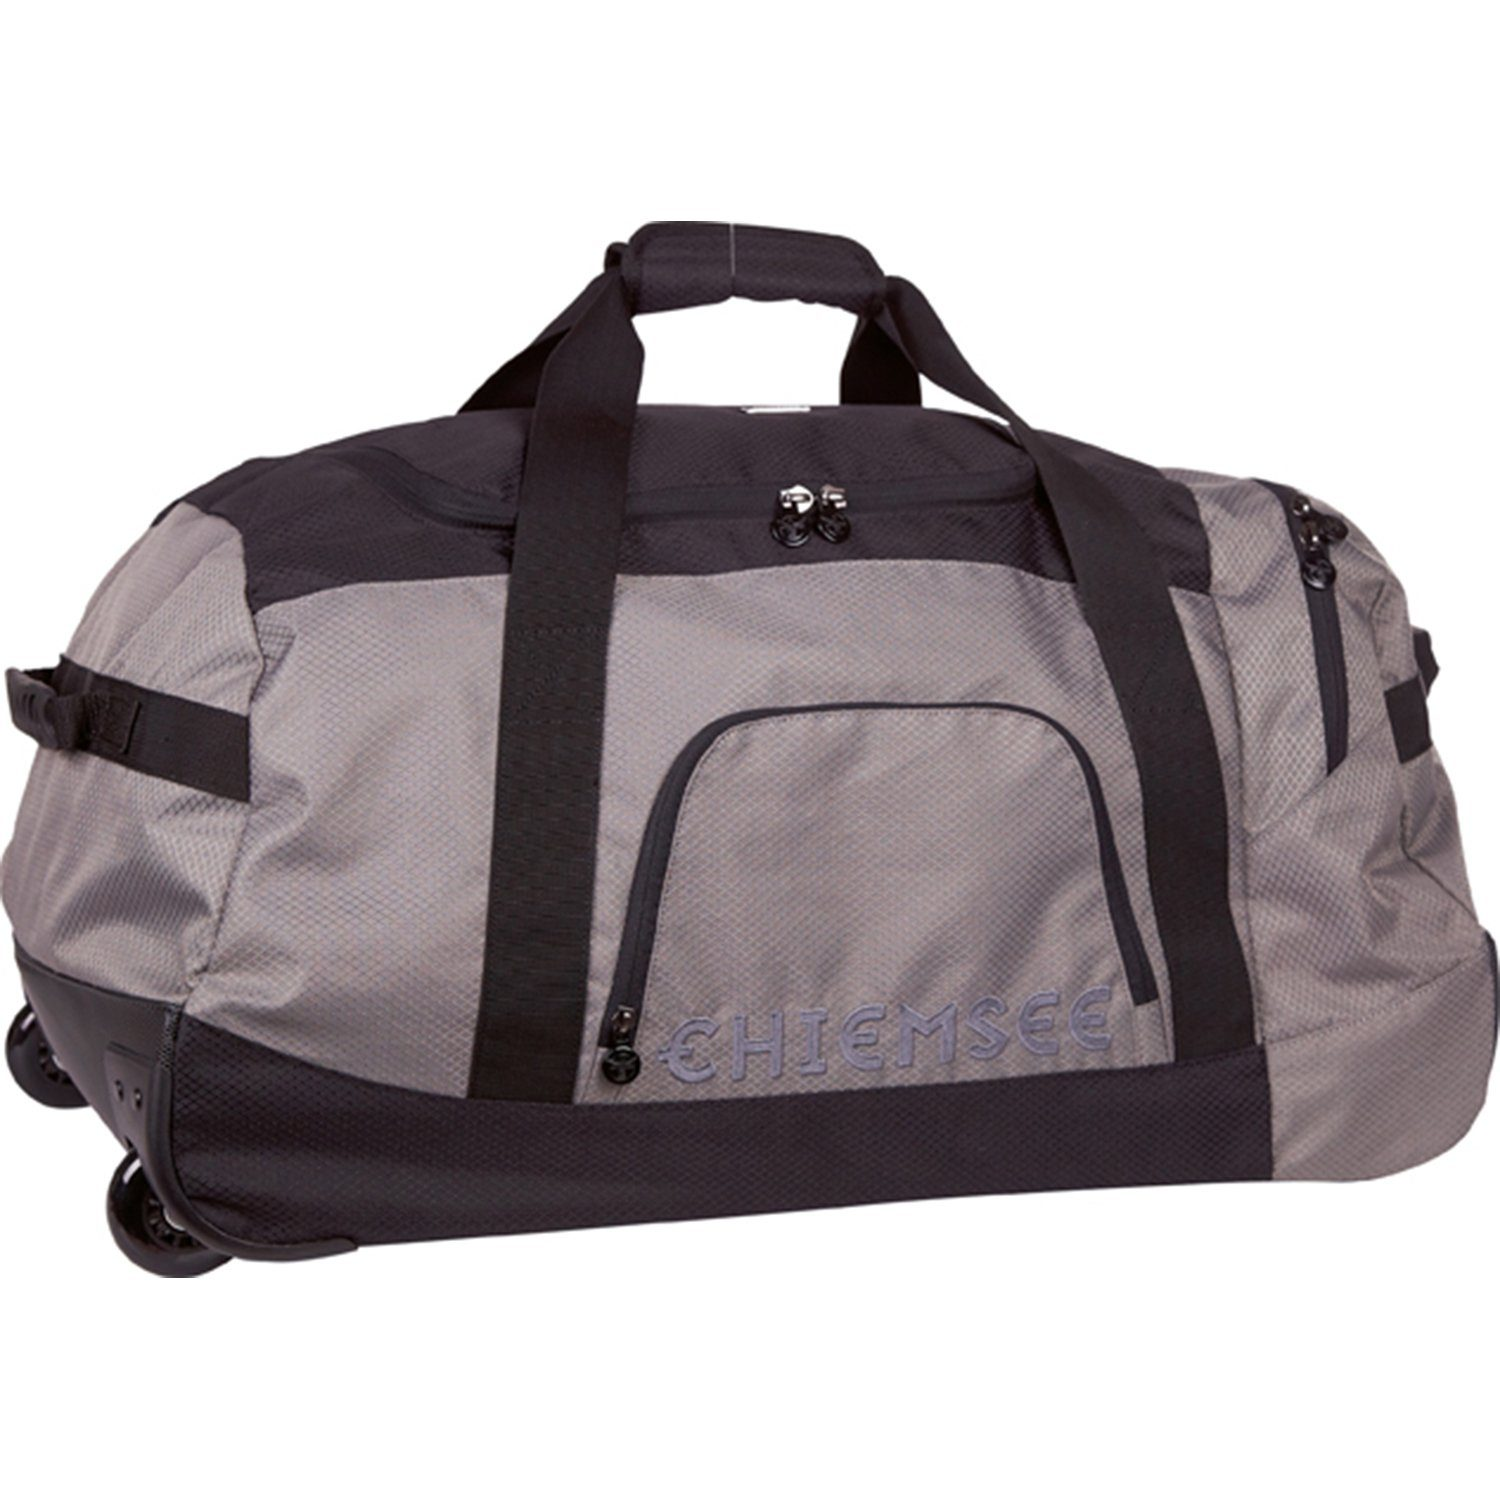 Chiemsee Urban Solid Rolling Duffle Large Reisetasche 70 cm